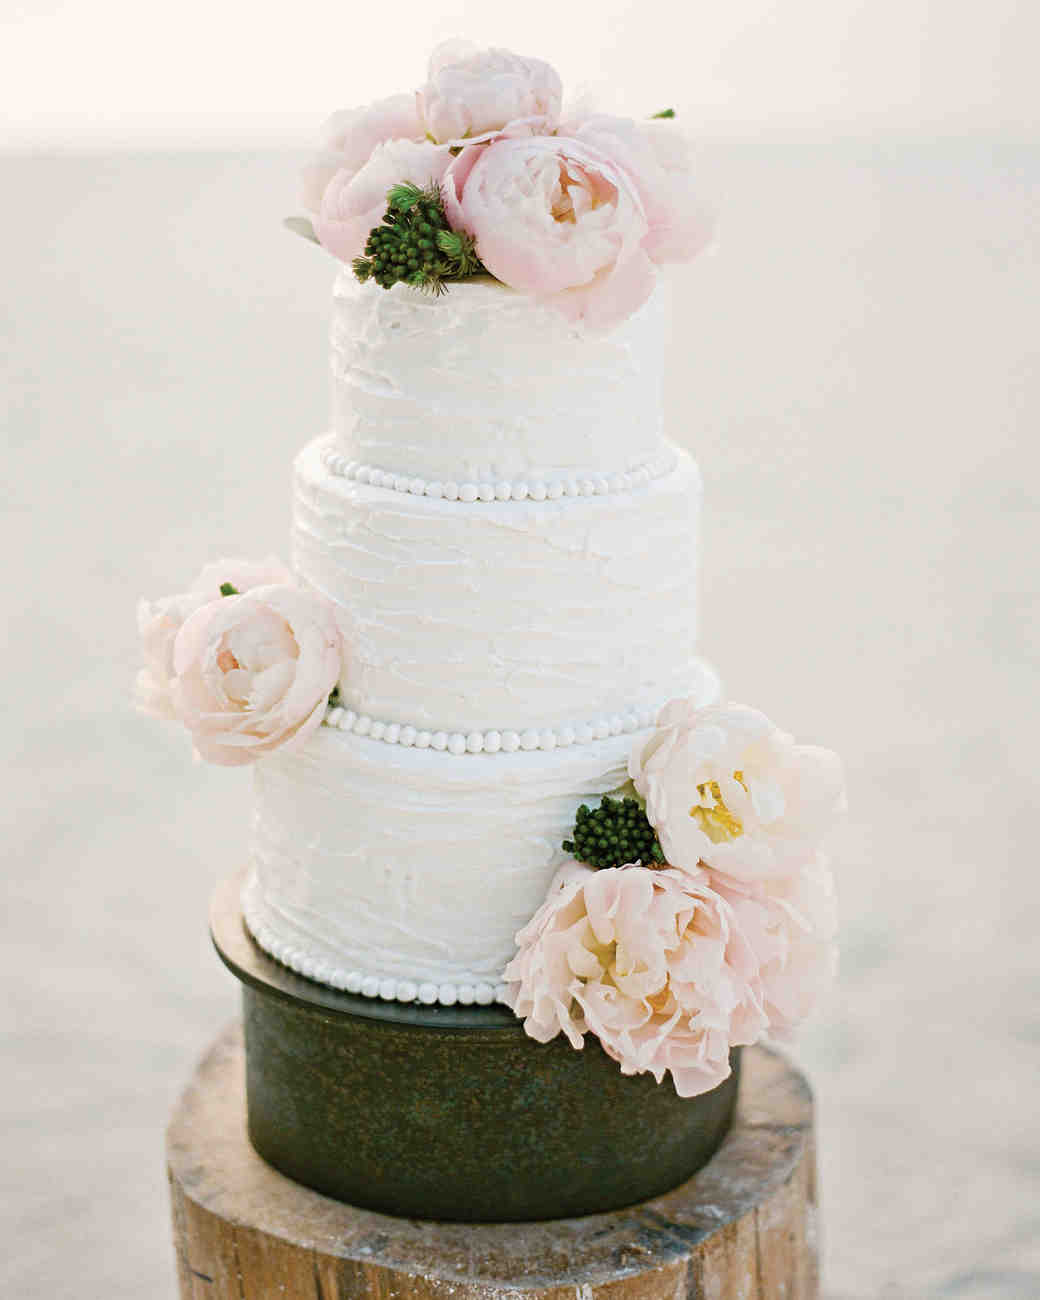 Three-Tiered White Wedding Cake with Blush Peonies and Icing Beading